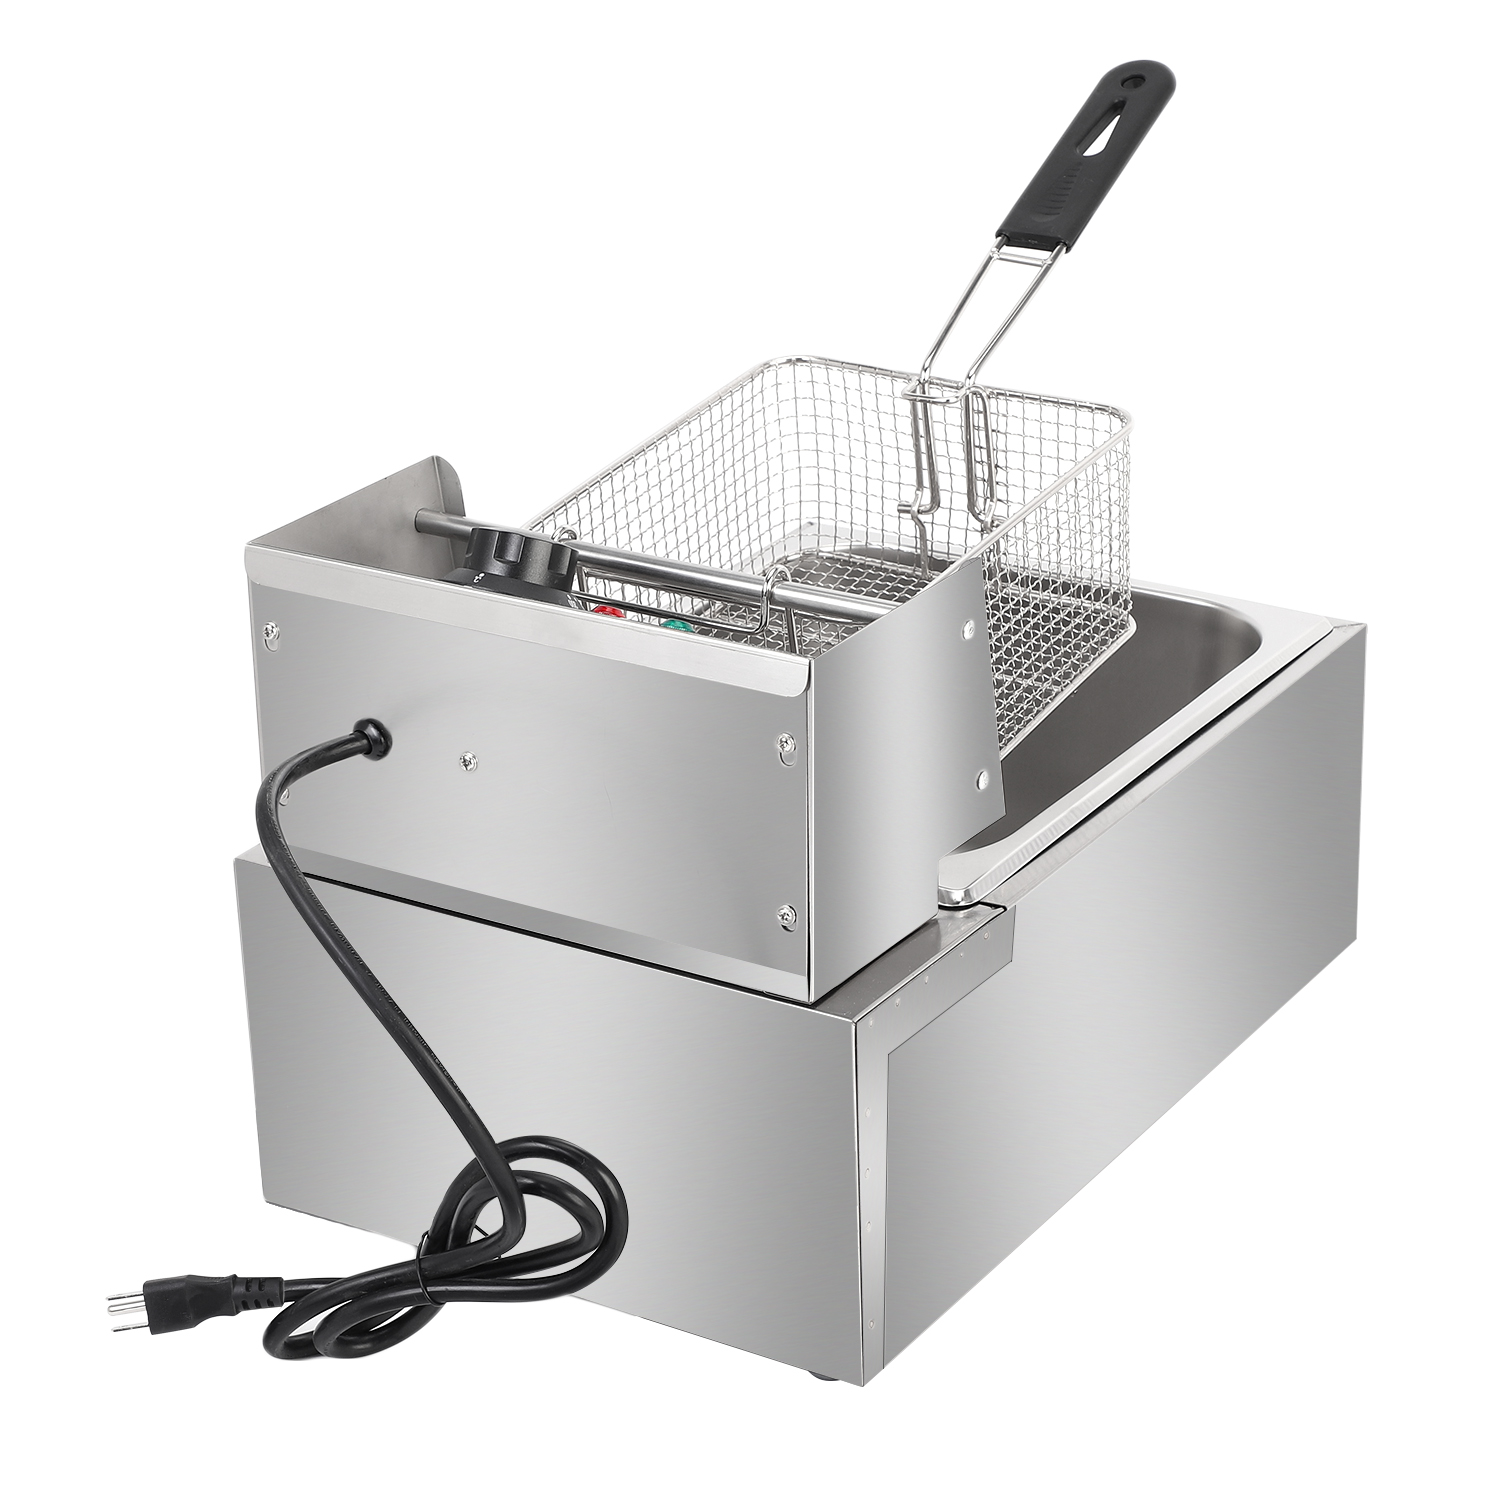 Details About 2500w 6l Electric Deep Fryer Commercial Countertop Basket French Fry Restaurant